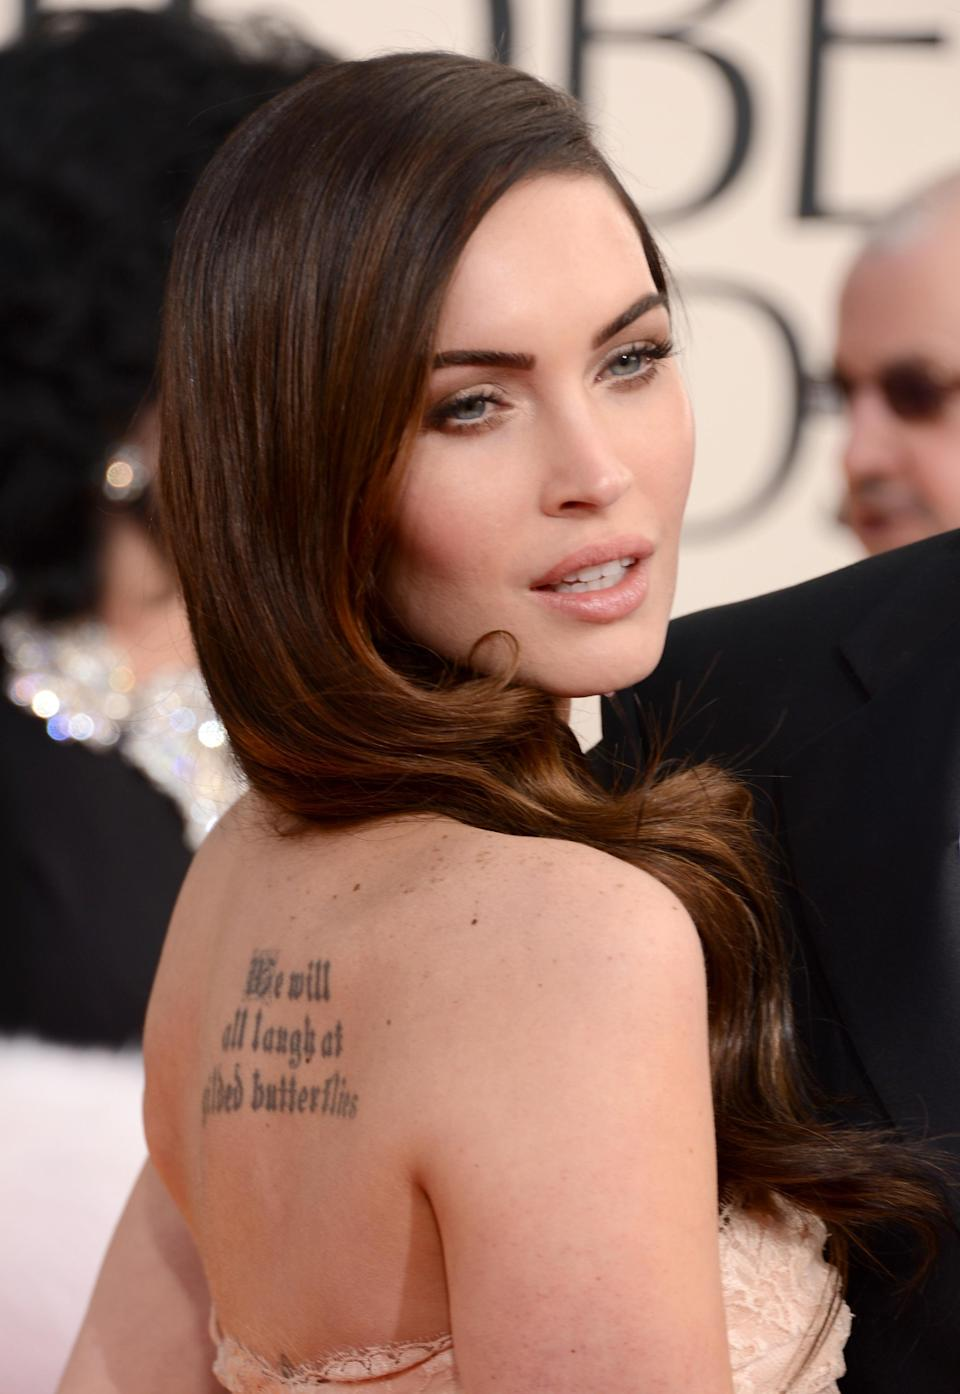 <p>The ink on Megan Fox's right shoulder reads 'We will all laugh at gilded butterflies' and is taken from Shakespeare's play 'King Lear' – although the actress has slightly adjusted the wording. <em>[Photo: Getty]</em> </p>